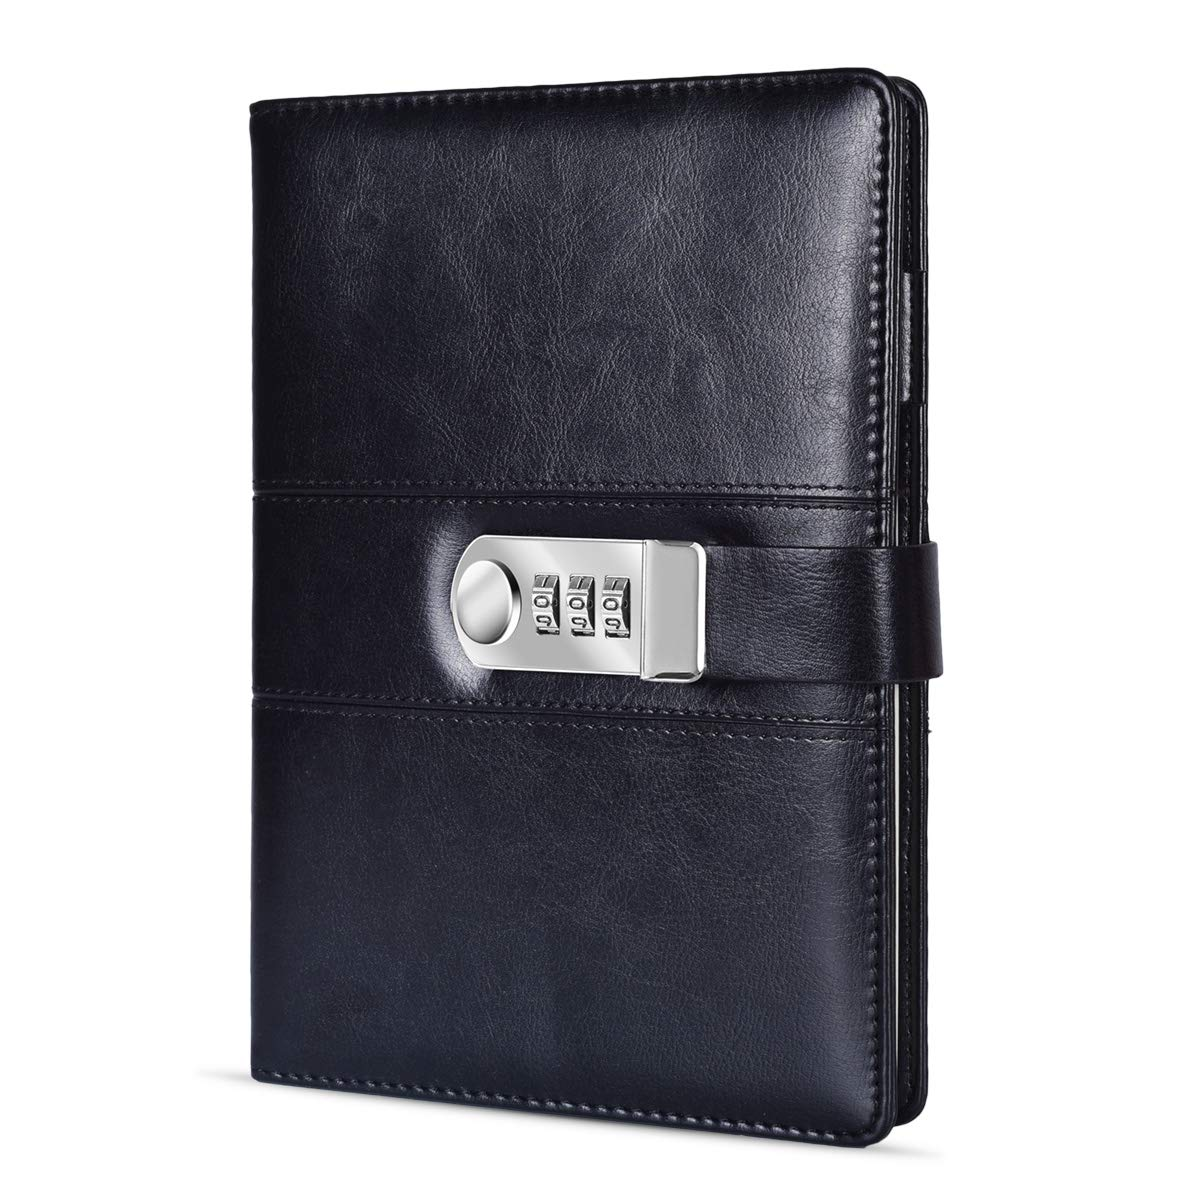 ARRLSDB A5 PU Leather Diary with Lock, Journal with Combination Lock Password Journal Locking Journal Diary (Black)